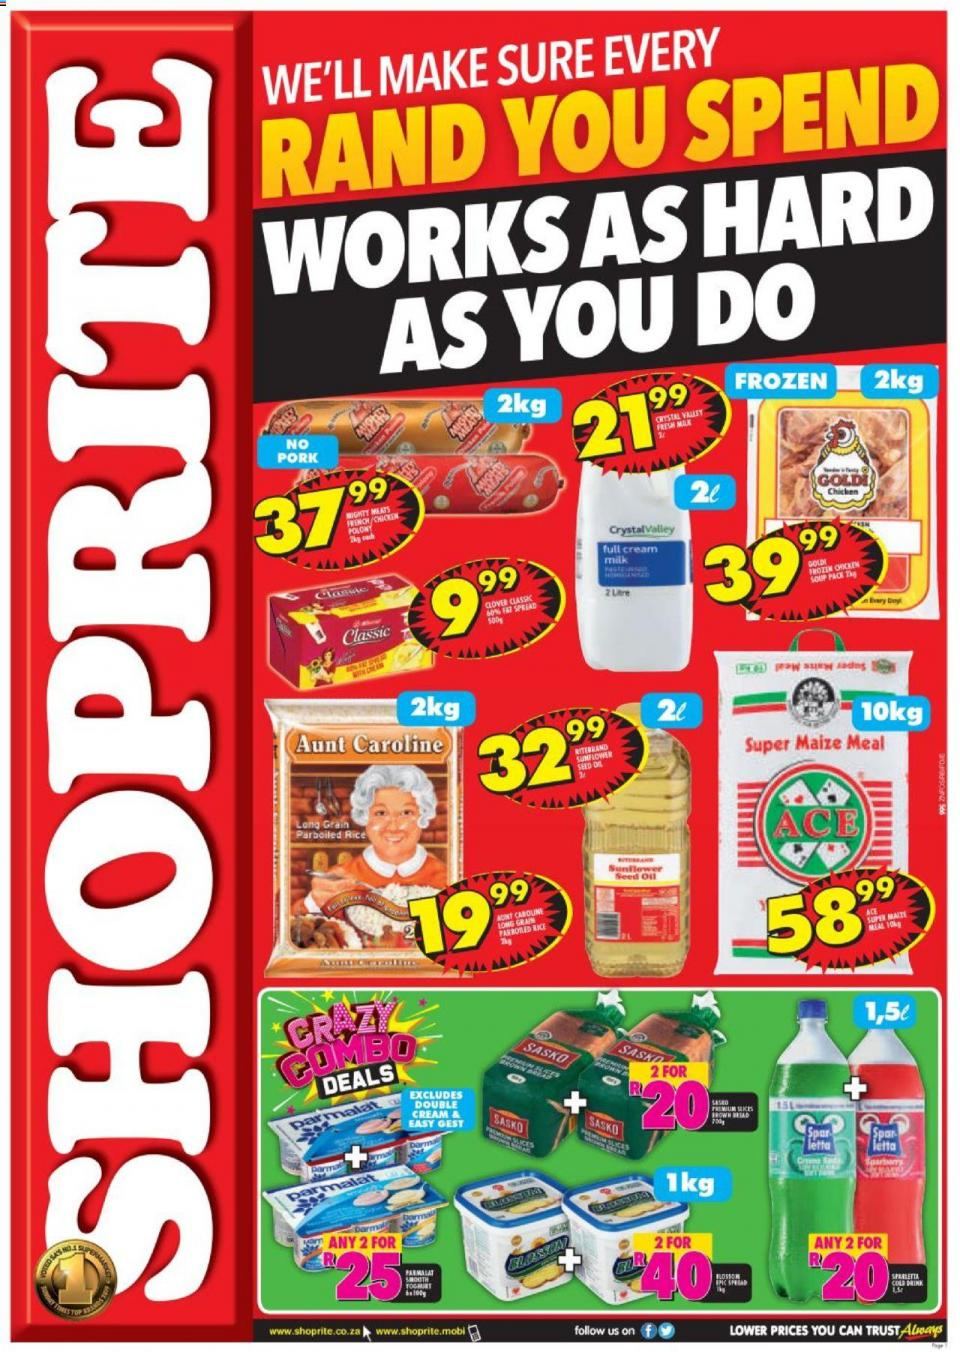 shoprite specials hustle promotion 07 october 2019 kwazulu natal